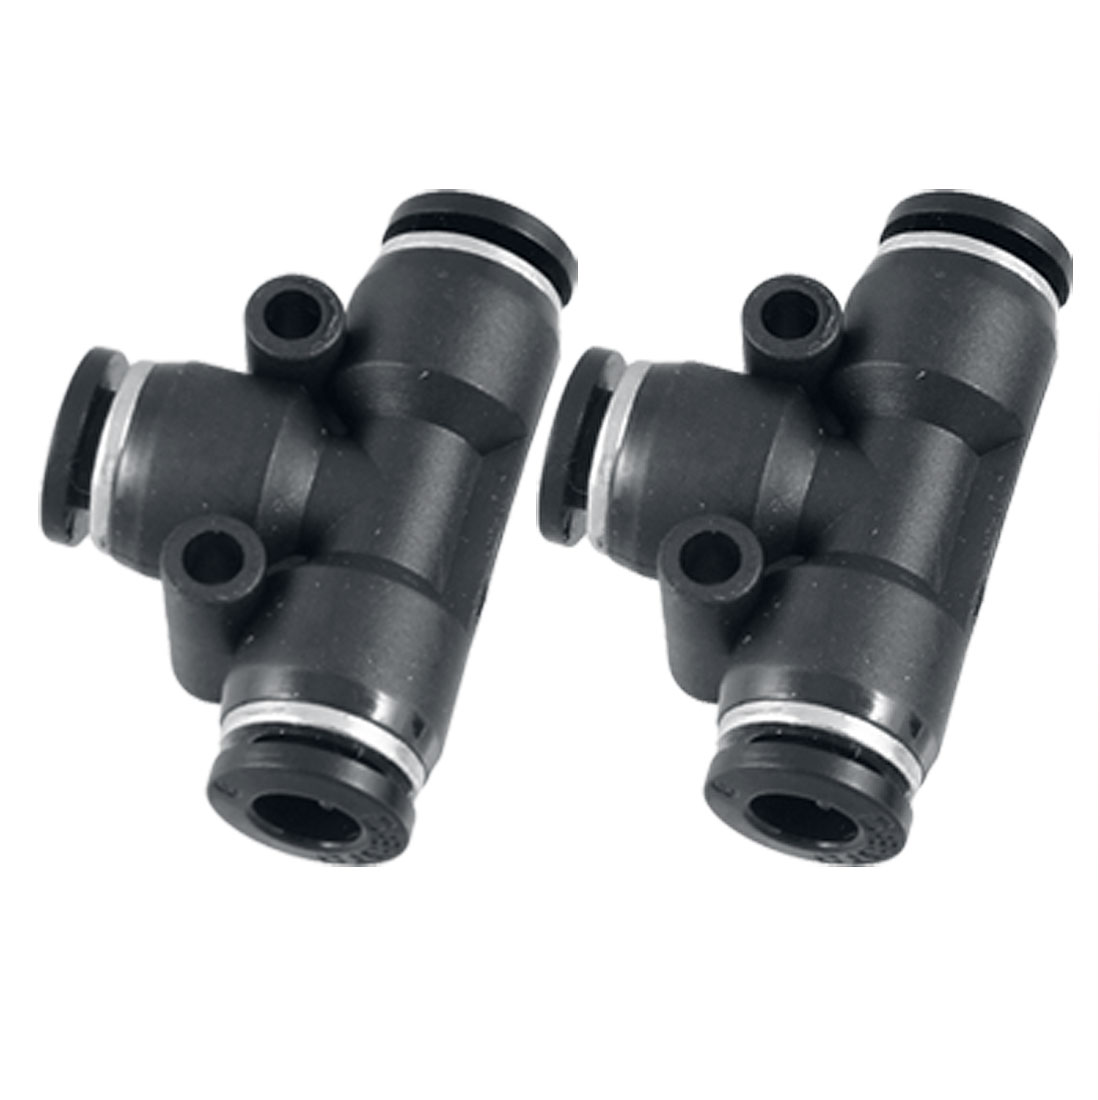 Black Plastic 6mm to 6mm Push In Quick Fittings T Connector 2 Pcs